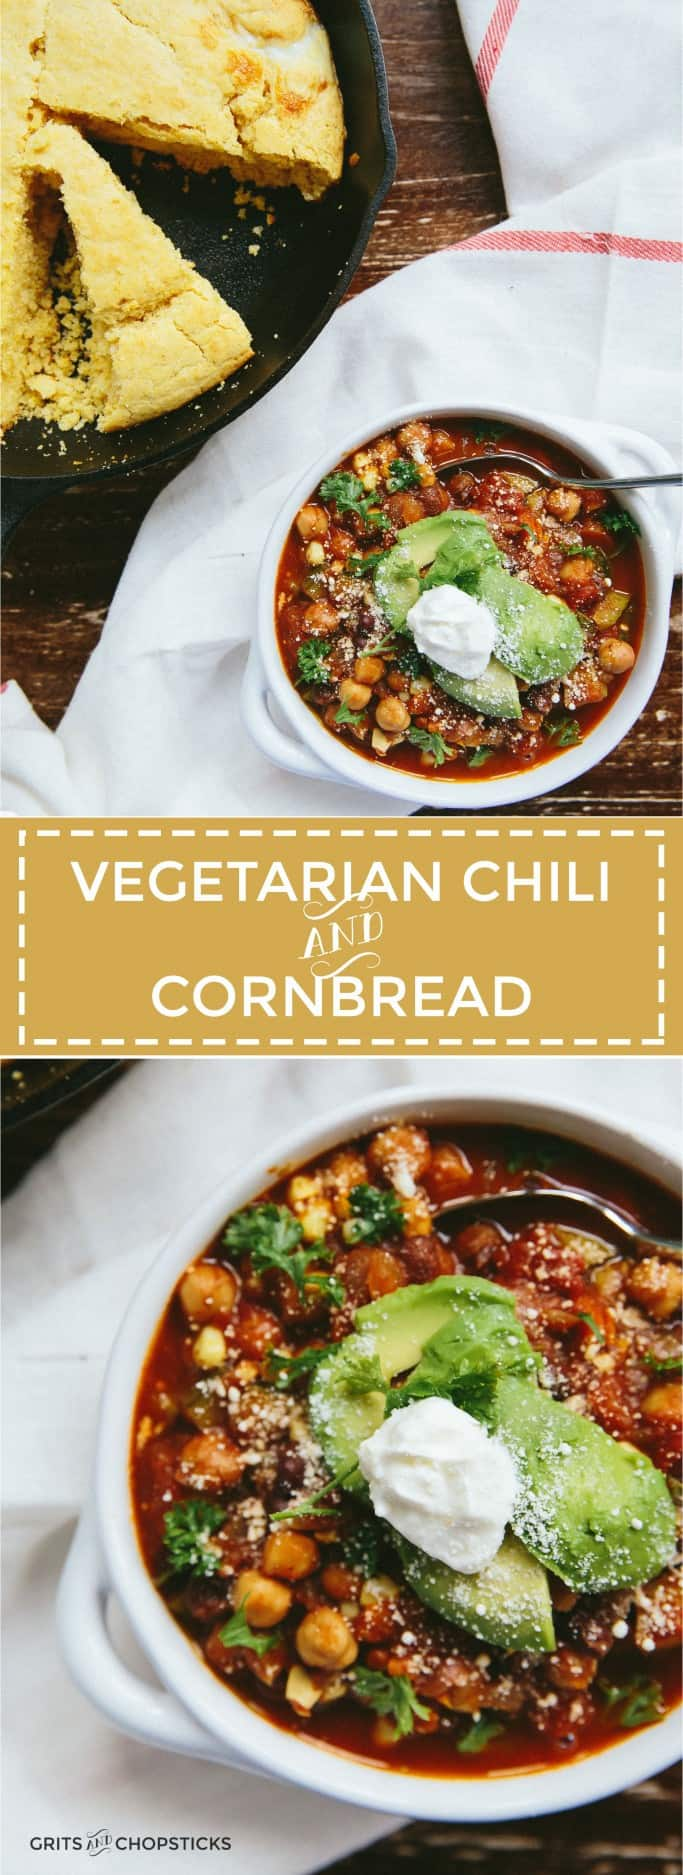 This vegetarian chili and skillet cornbread is perfect for cool fall weeknights!